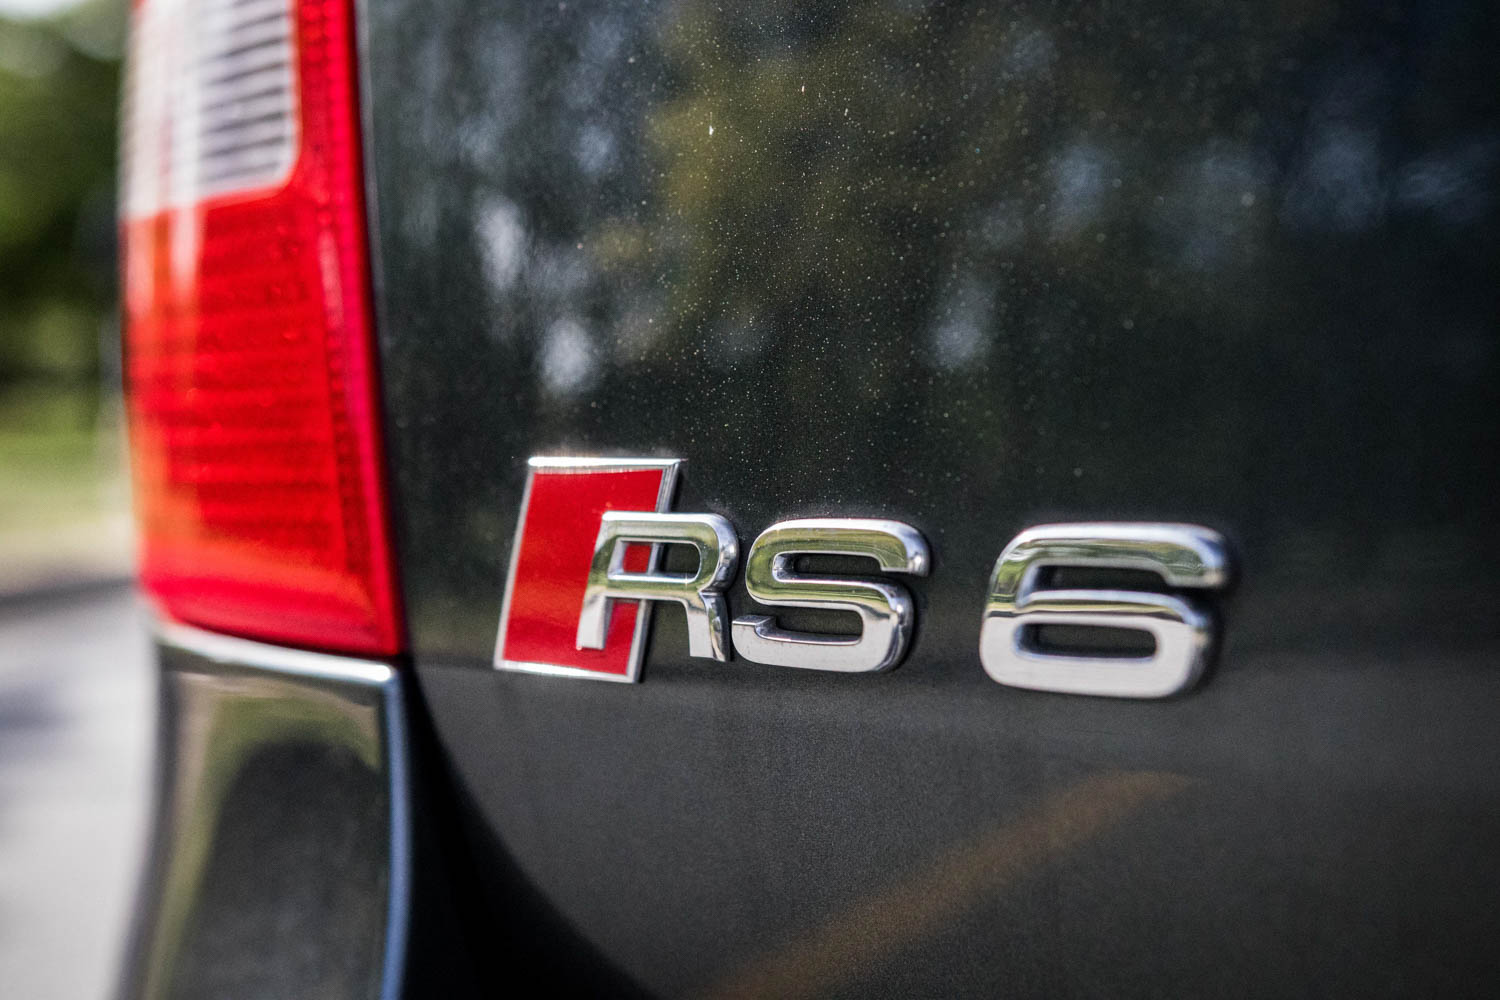 Audi RS6 Avant badge